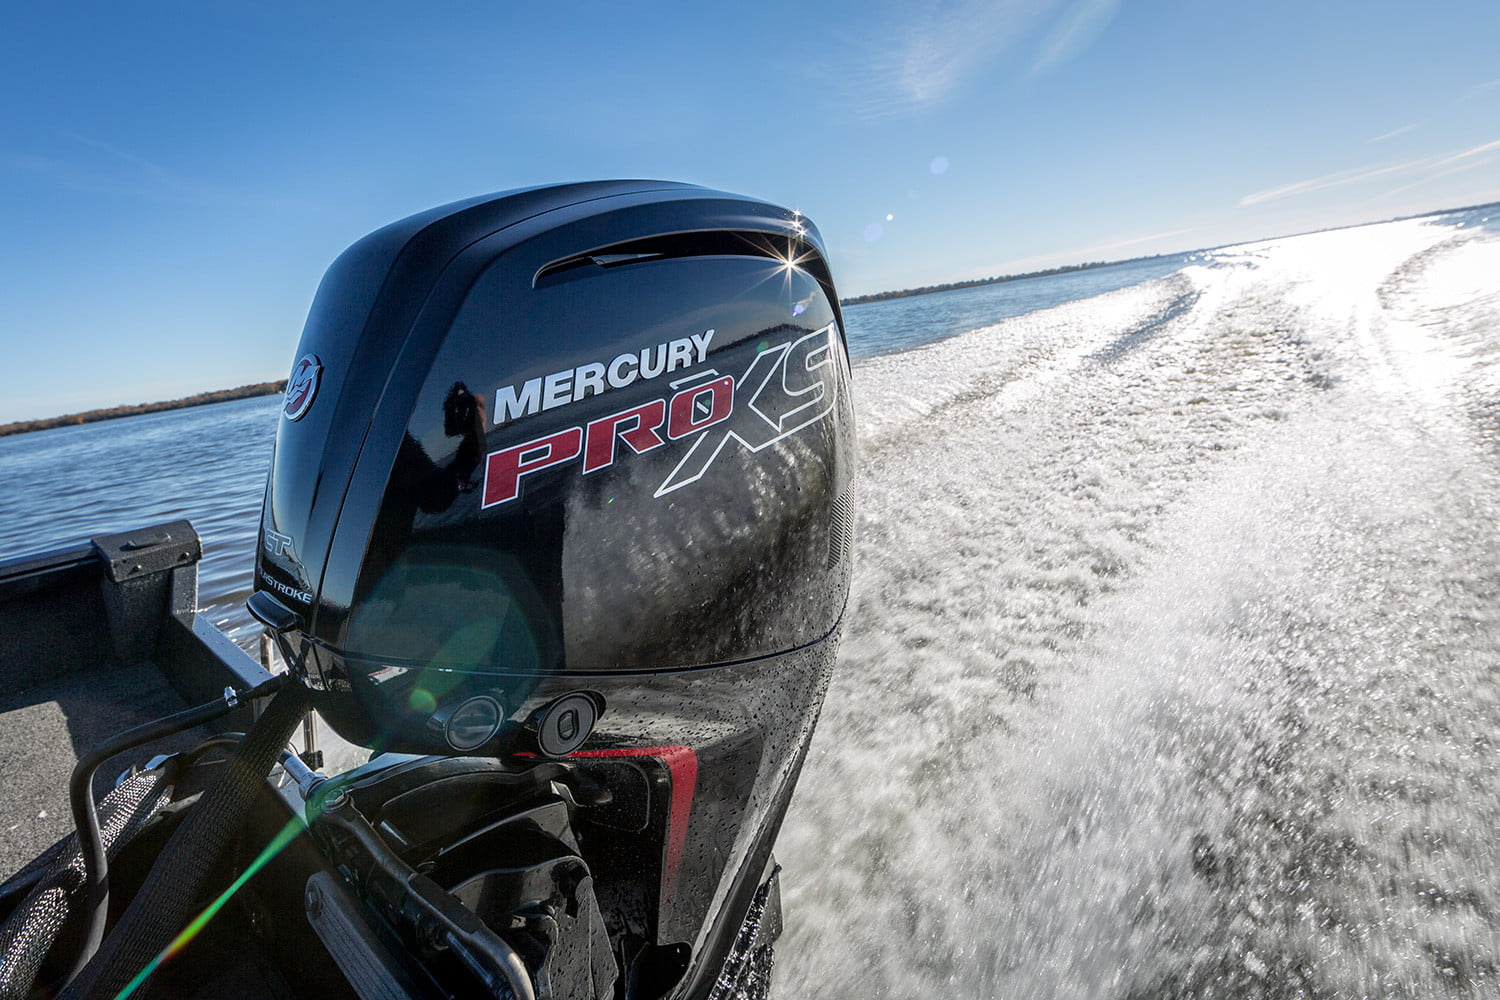 ethanol in fuel has some downsides according to latest studies Troubleshoot Mercury 60Hp Outboard Motors ethanol in fuel has some downsides mercury marine 003